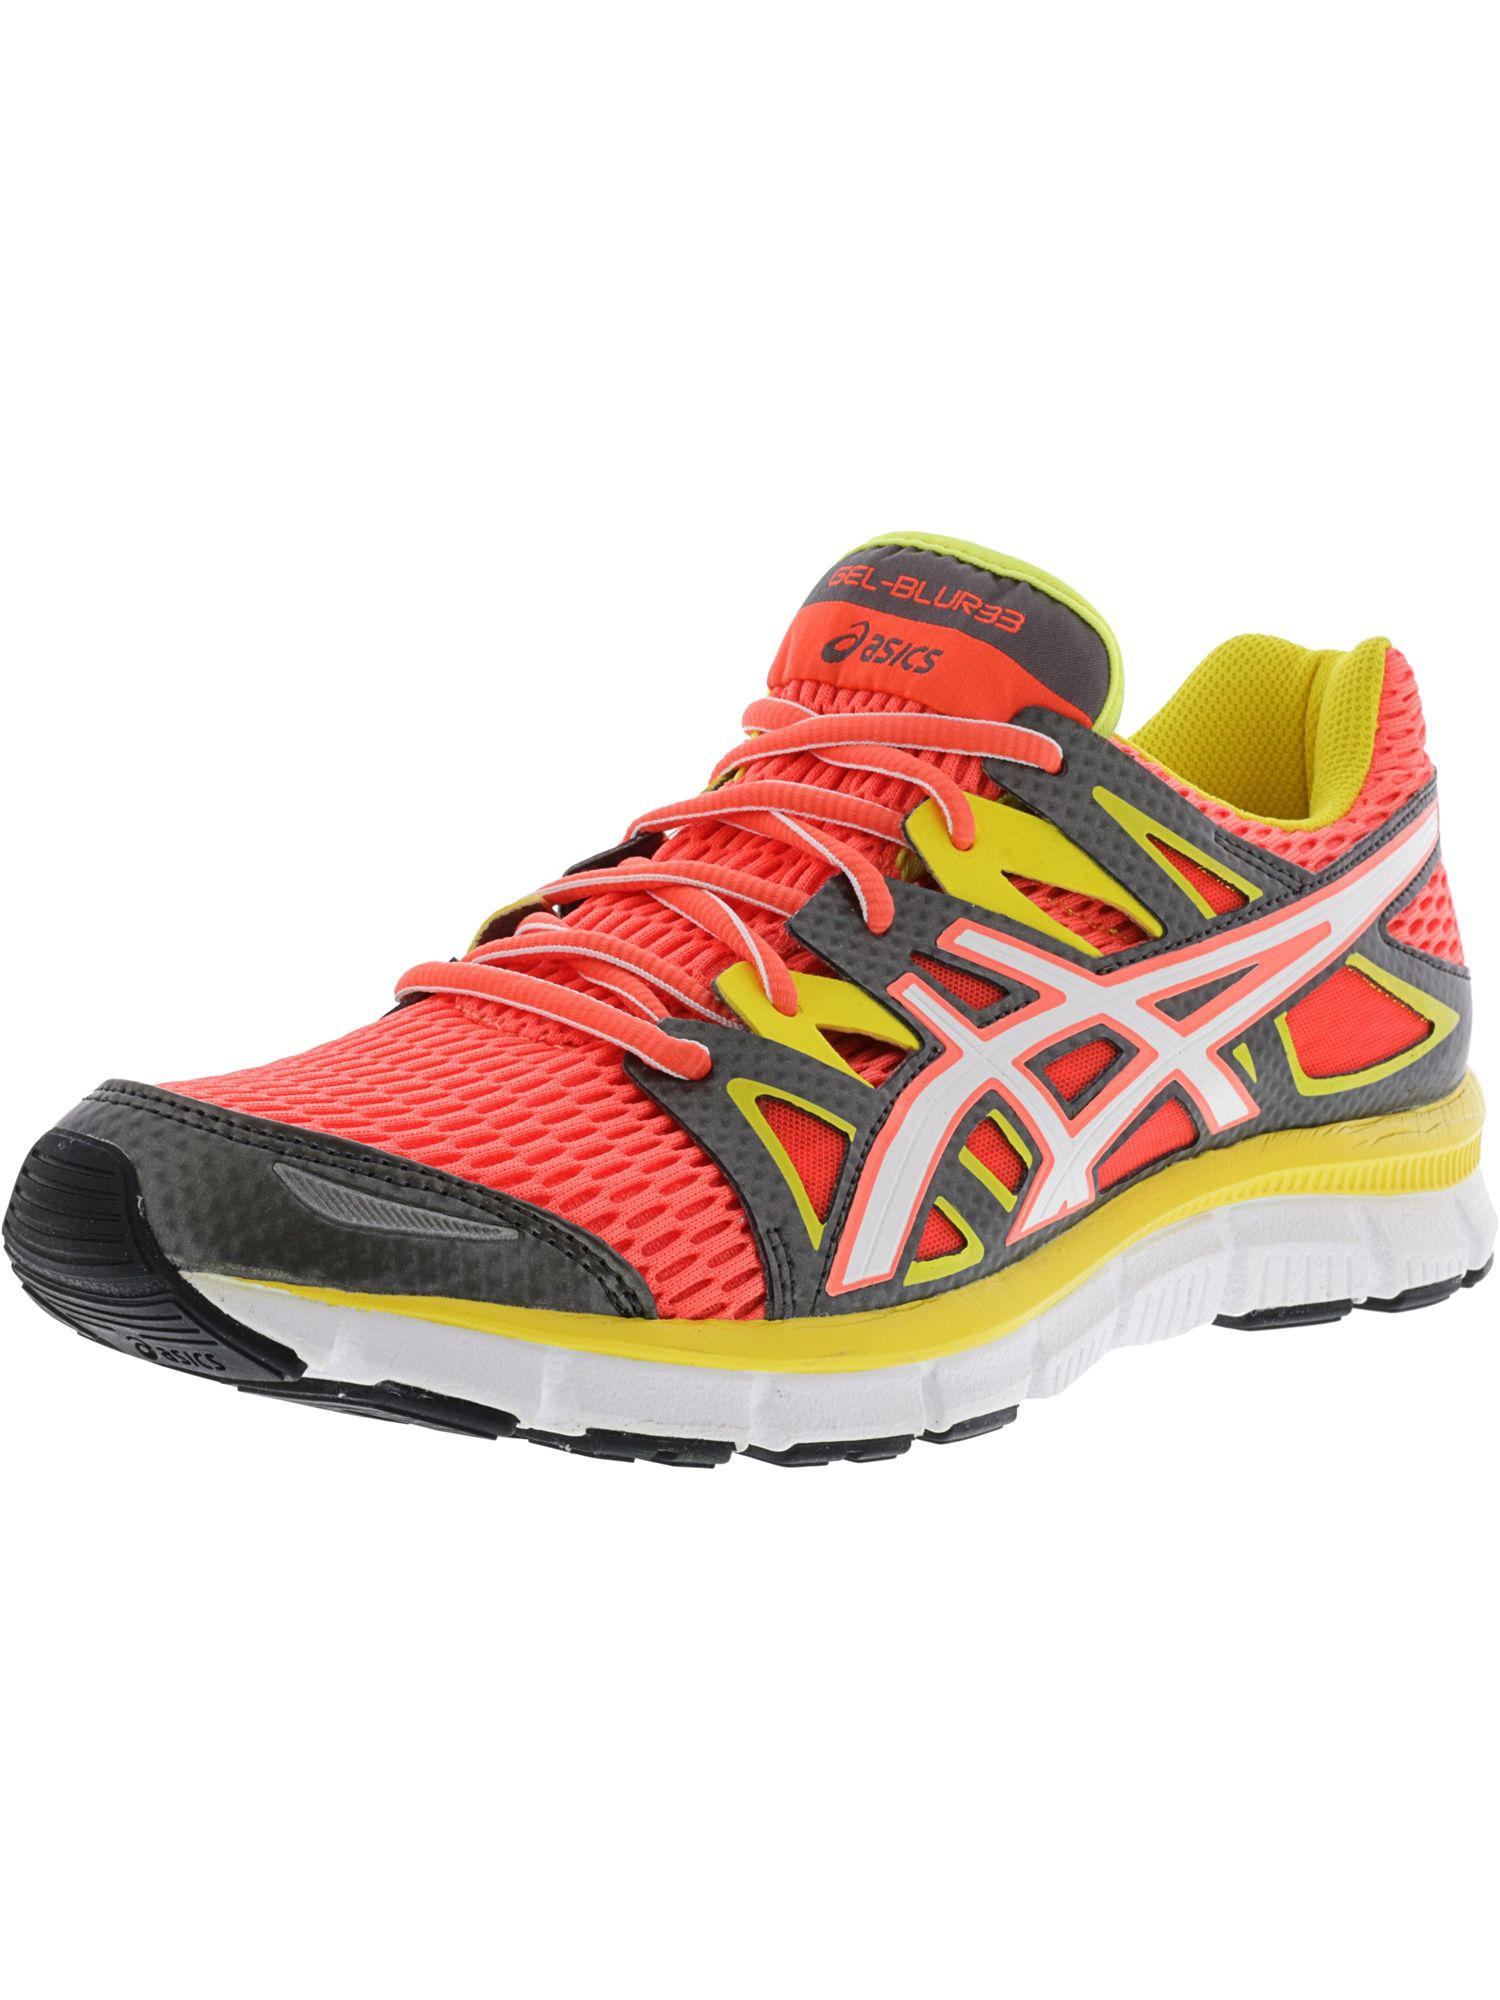 36c7087b9a10 Lyst - Asics Women s Gel-blur33 2.0 Hot Coral   White Sulfur Yellow ...